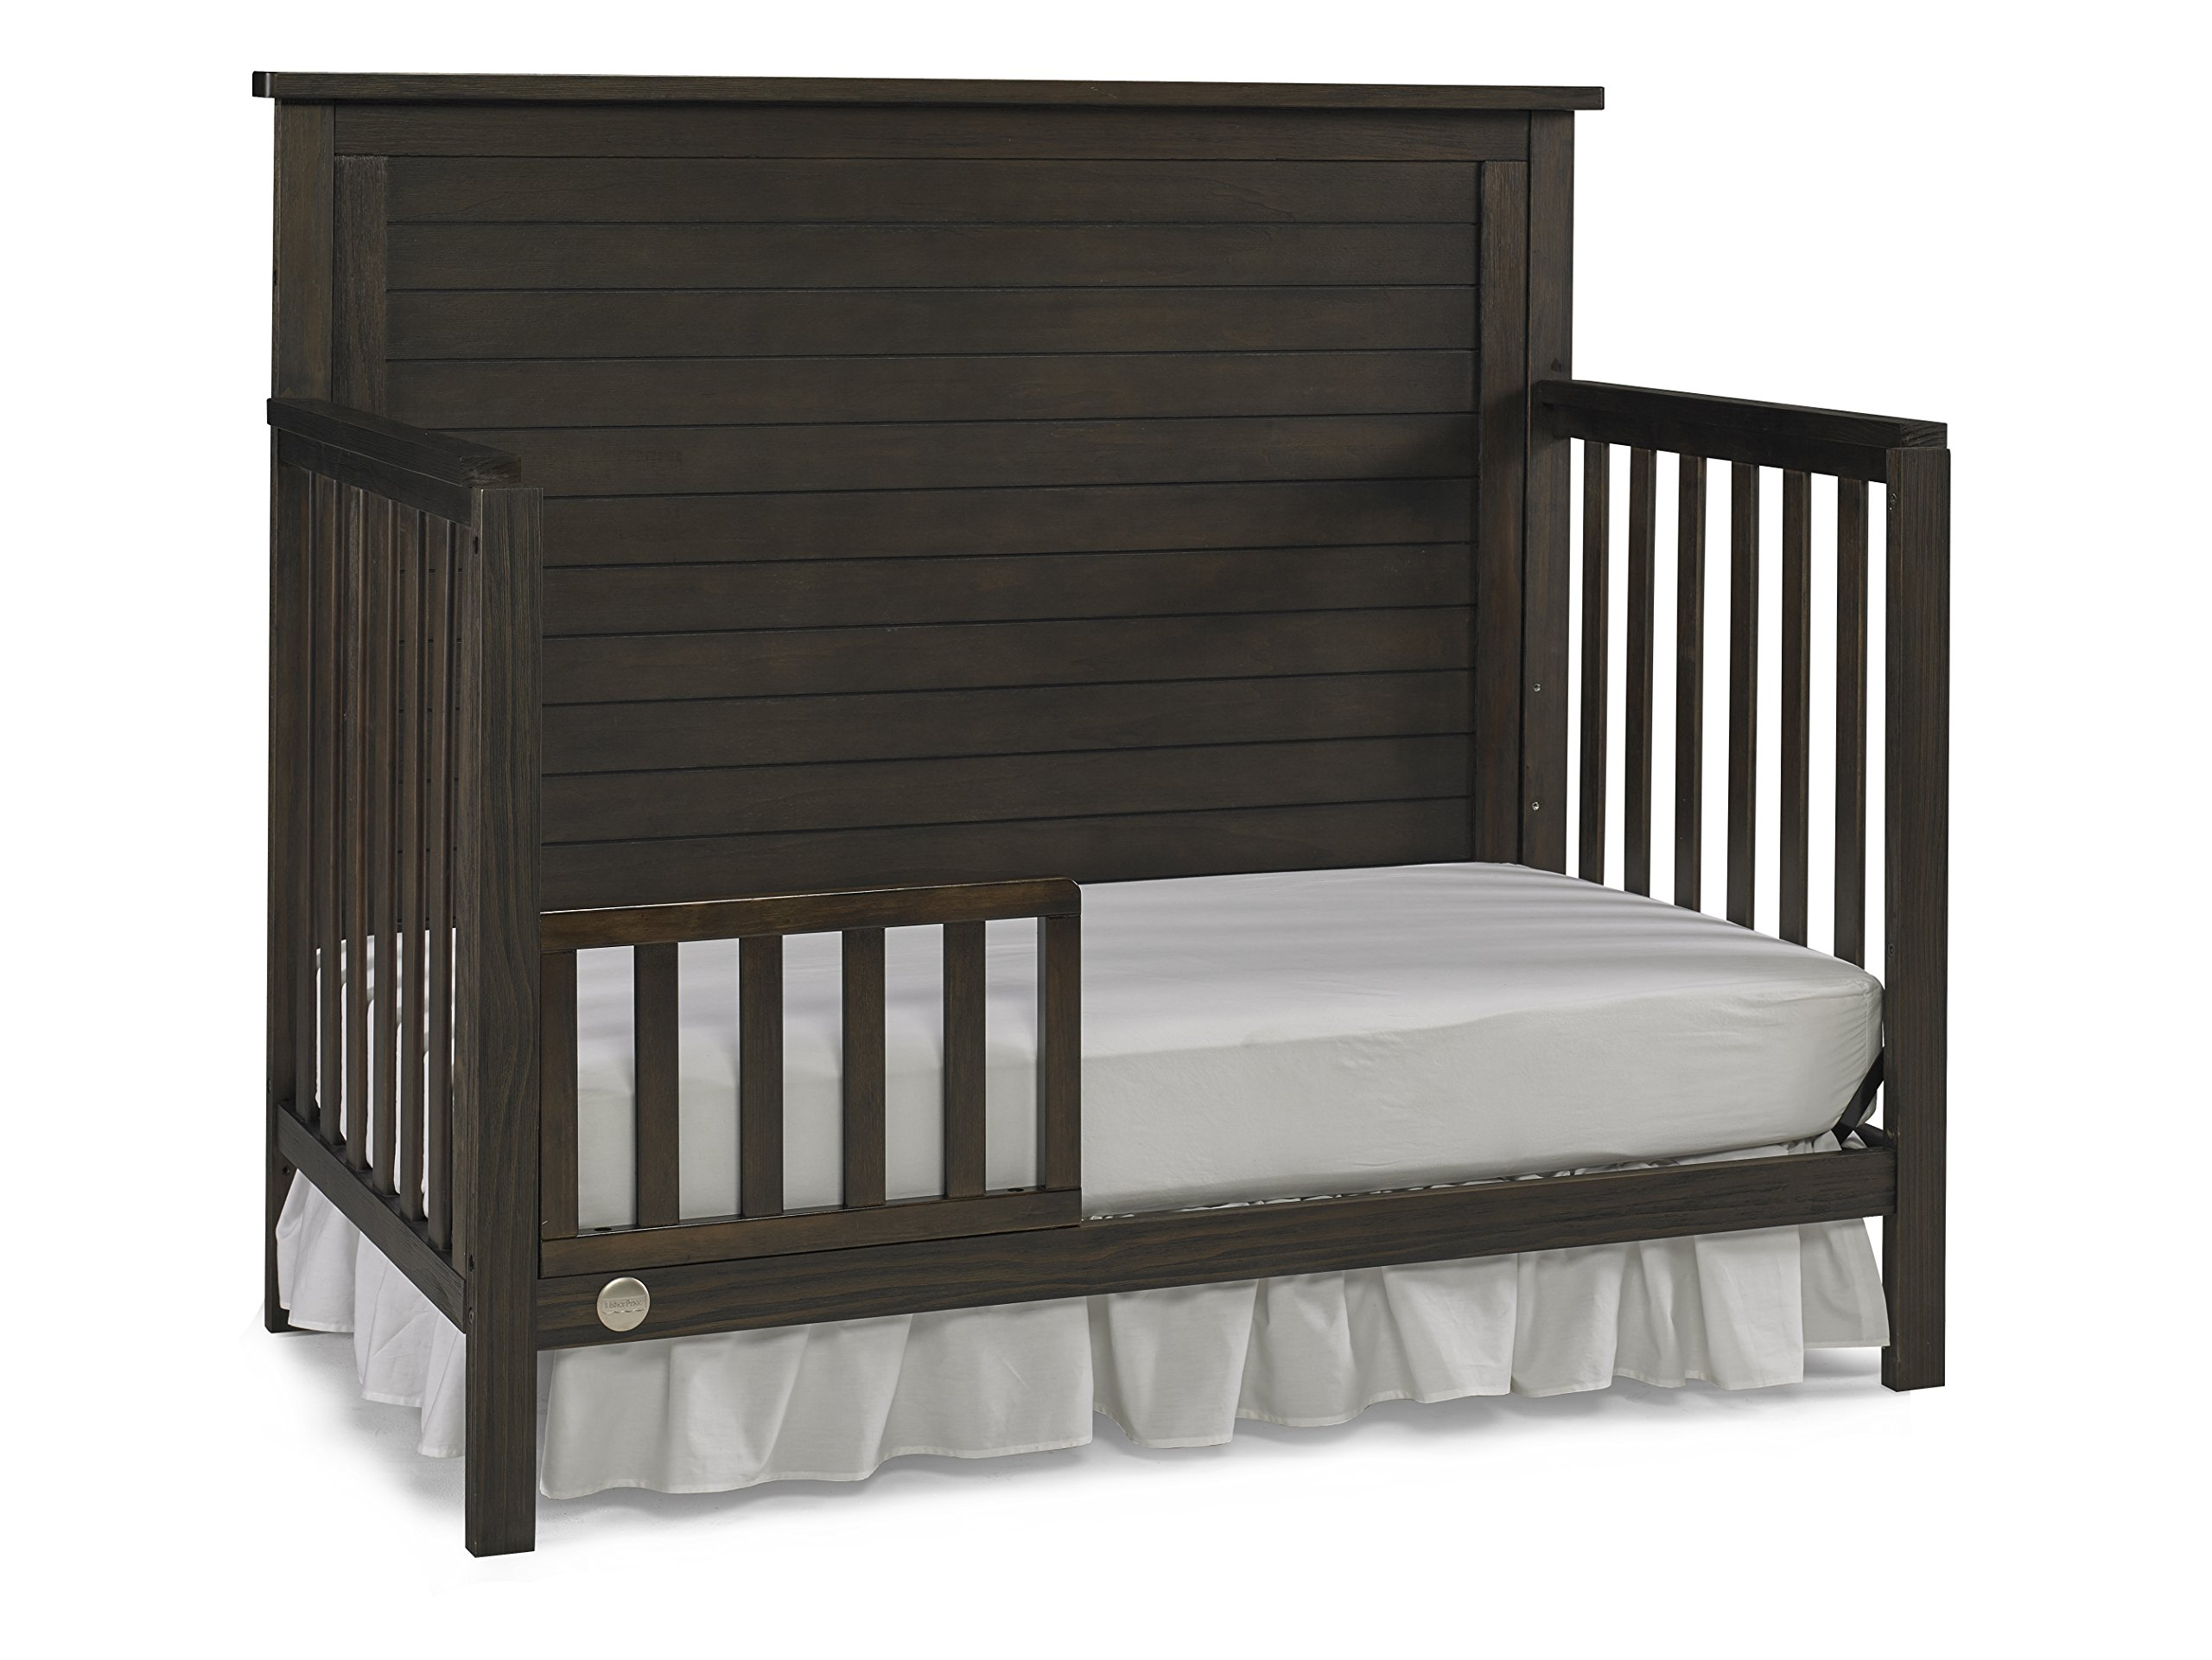 Fisher-Price Quinn 4 in 1 Convertible Crib, Wire Brushed Brown by Fisher-Price (Image #6)